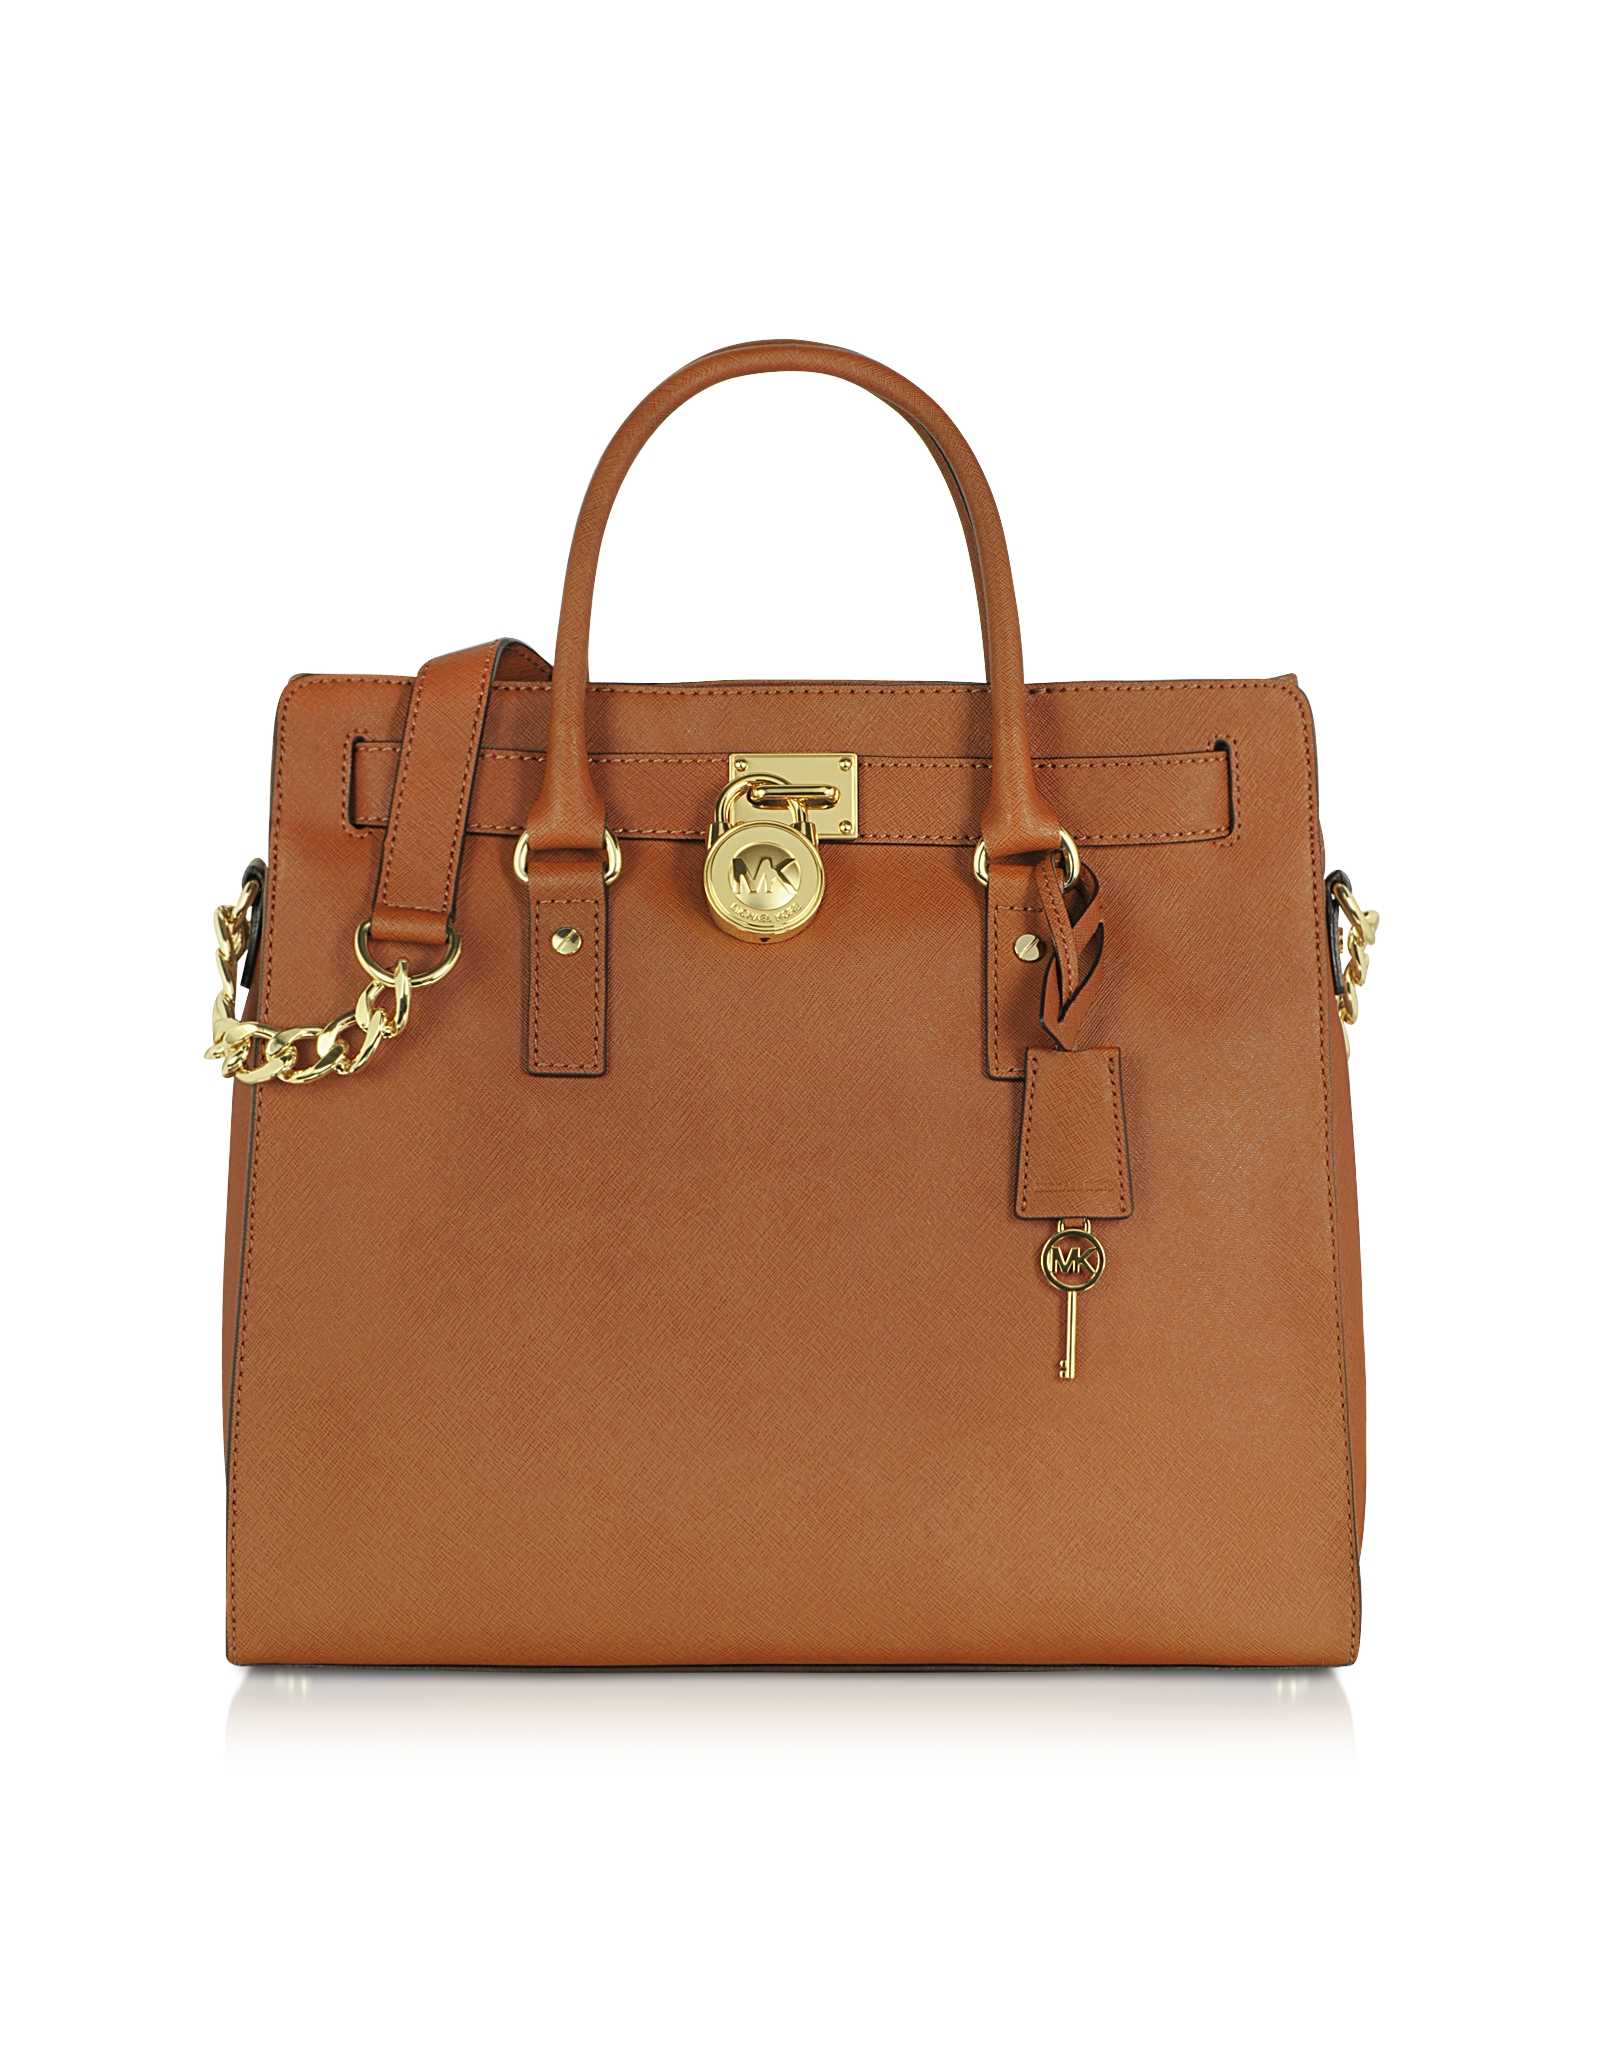 d6010d5dd6e6 Michael Kors Saffiano Tote Brown. Michael Kors Hamilton Saffiano Leather ...